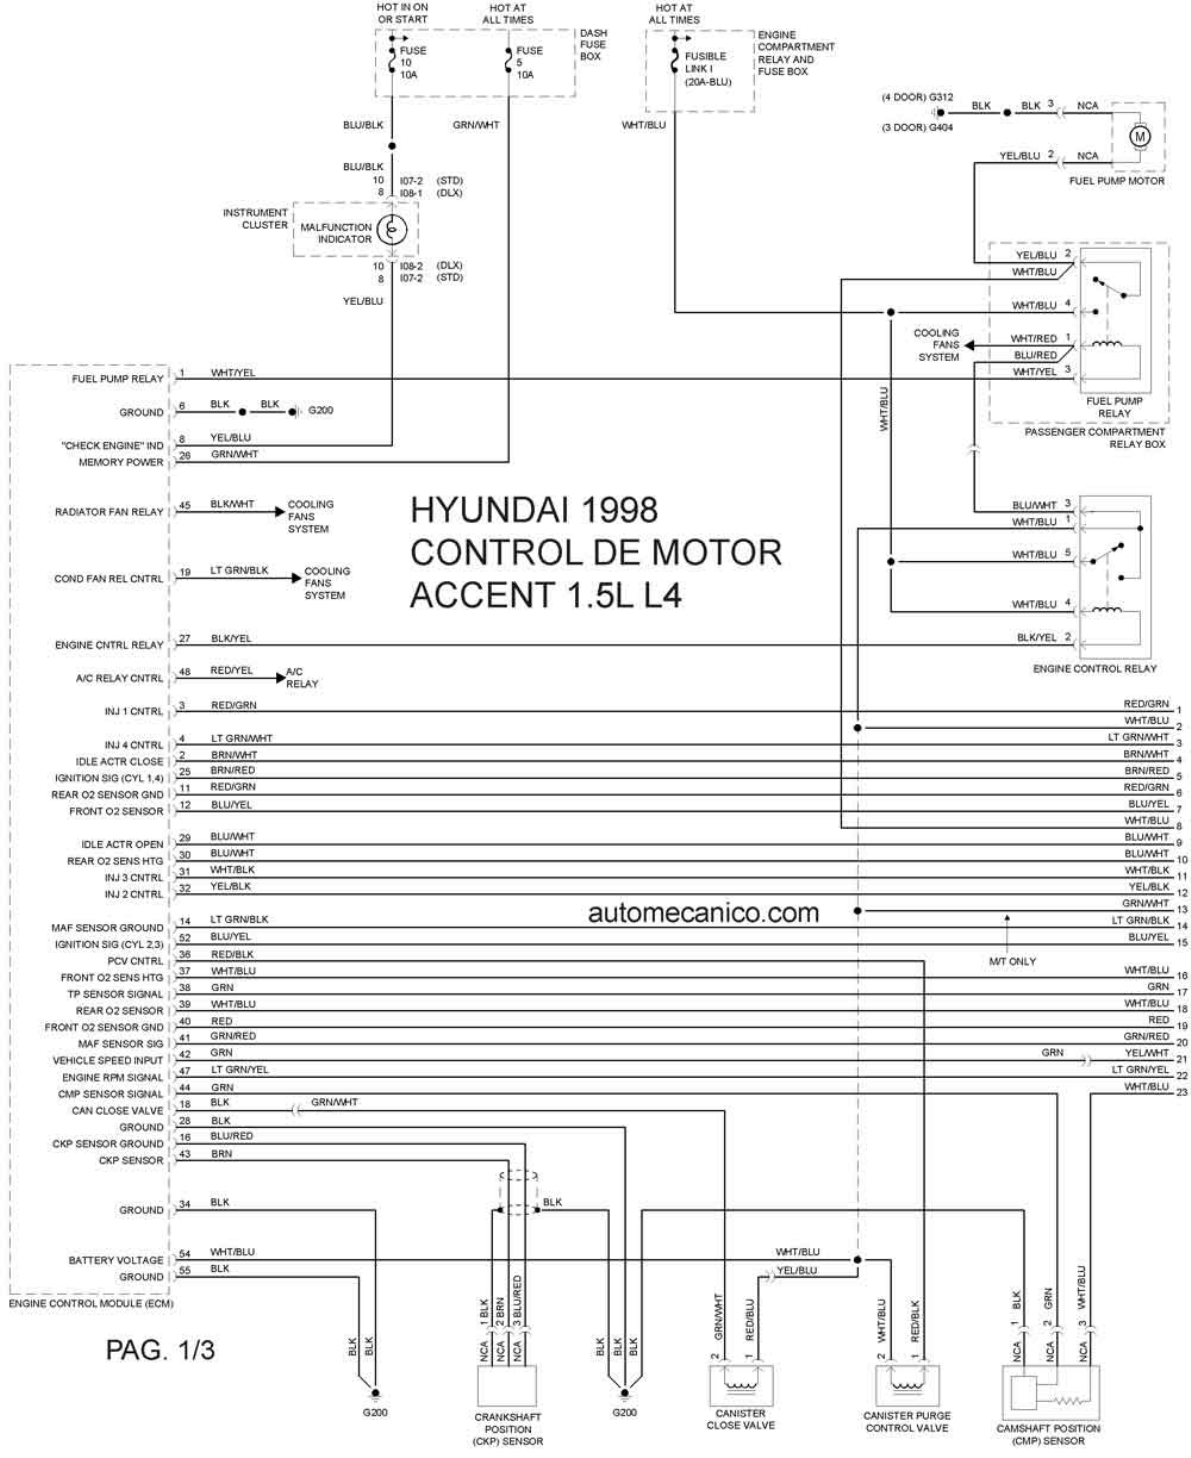 hyundai accent 1998 misc document wiring diagram pdf rh manuals co